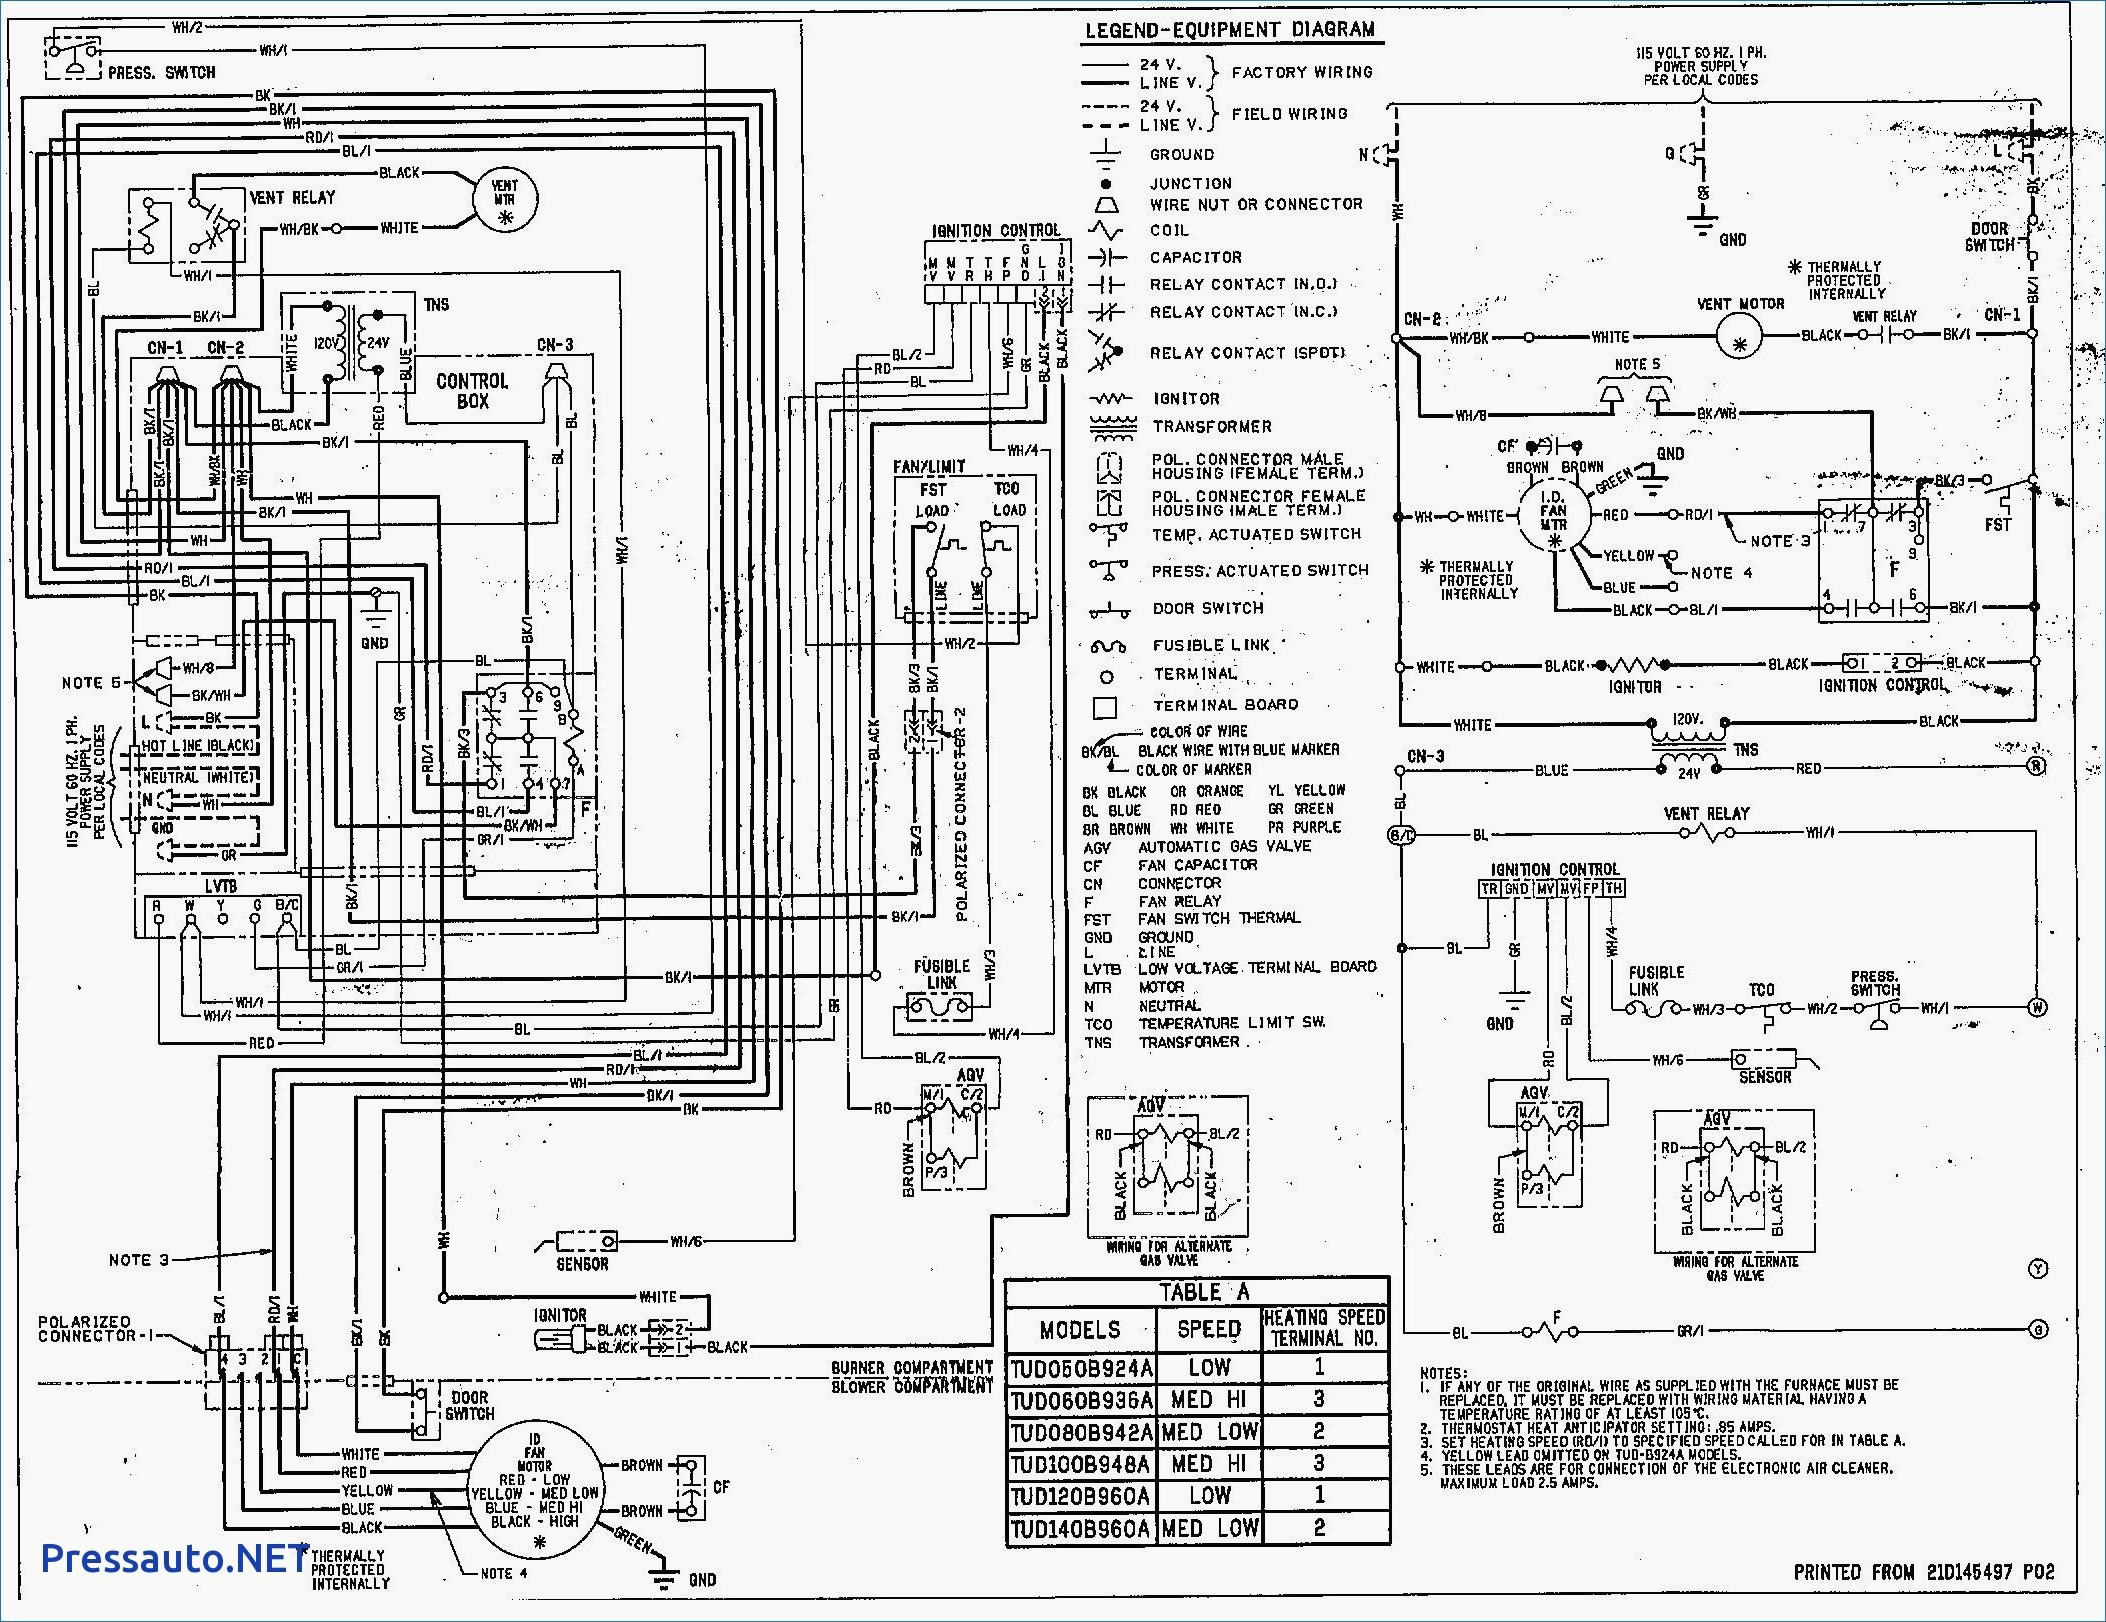 carrier chiller wiring diagram Collection-Rtha Chiller Wiring Diagram Harness Inside Control 12-a